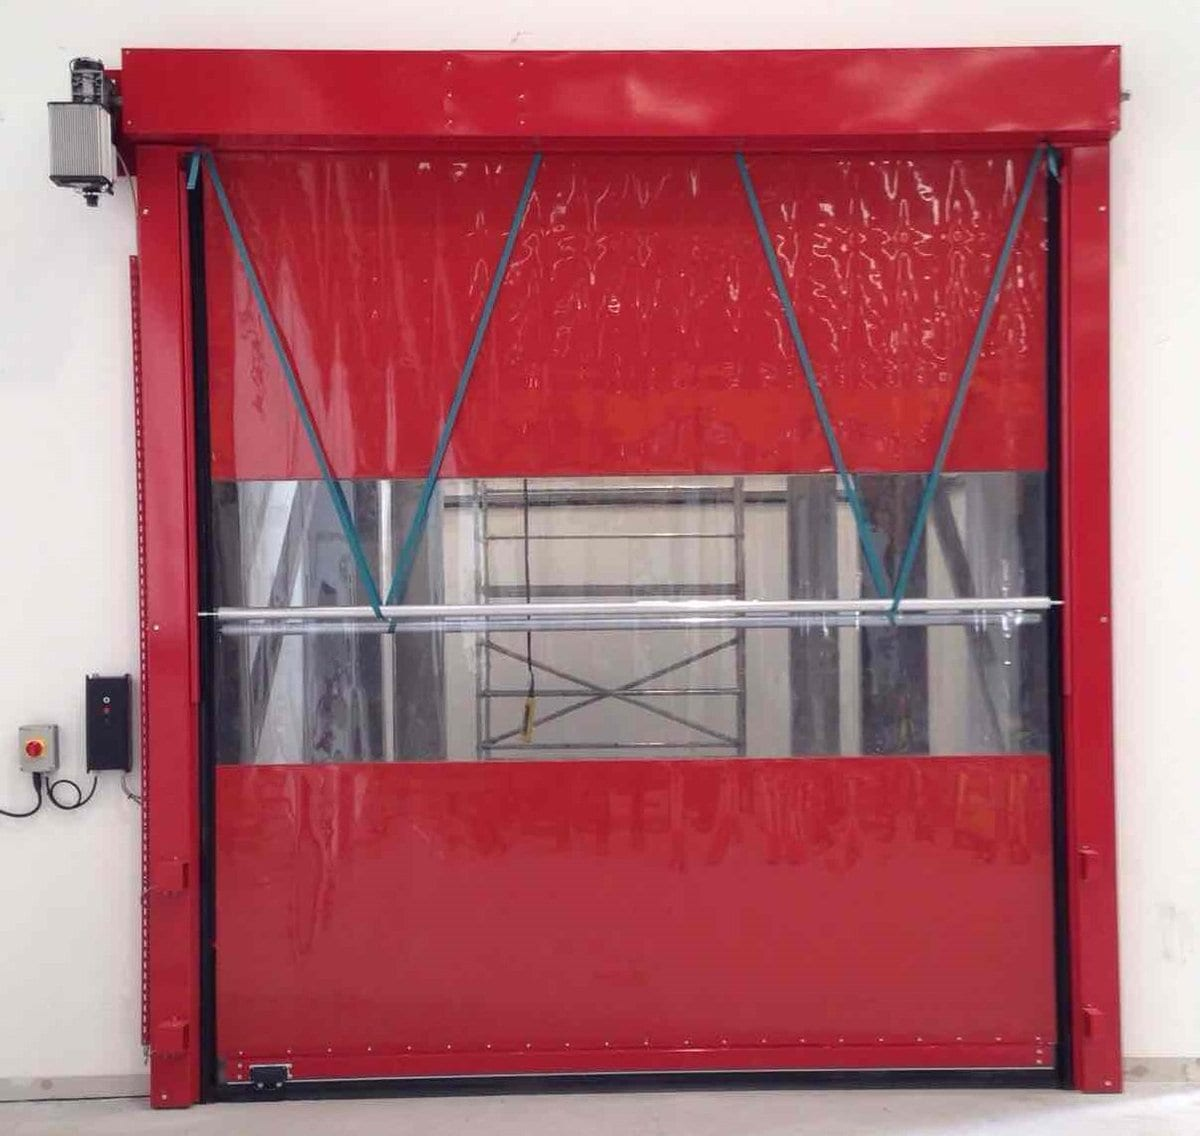 Folding Sliding Door Company Leeds: Reduce Heat Loss With A Cheetah Rapid Roll Door